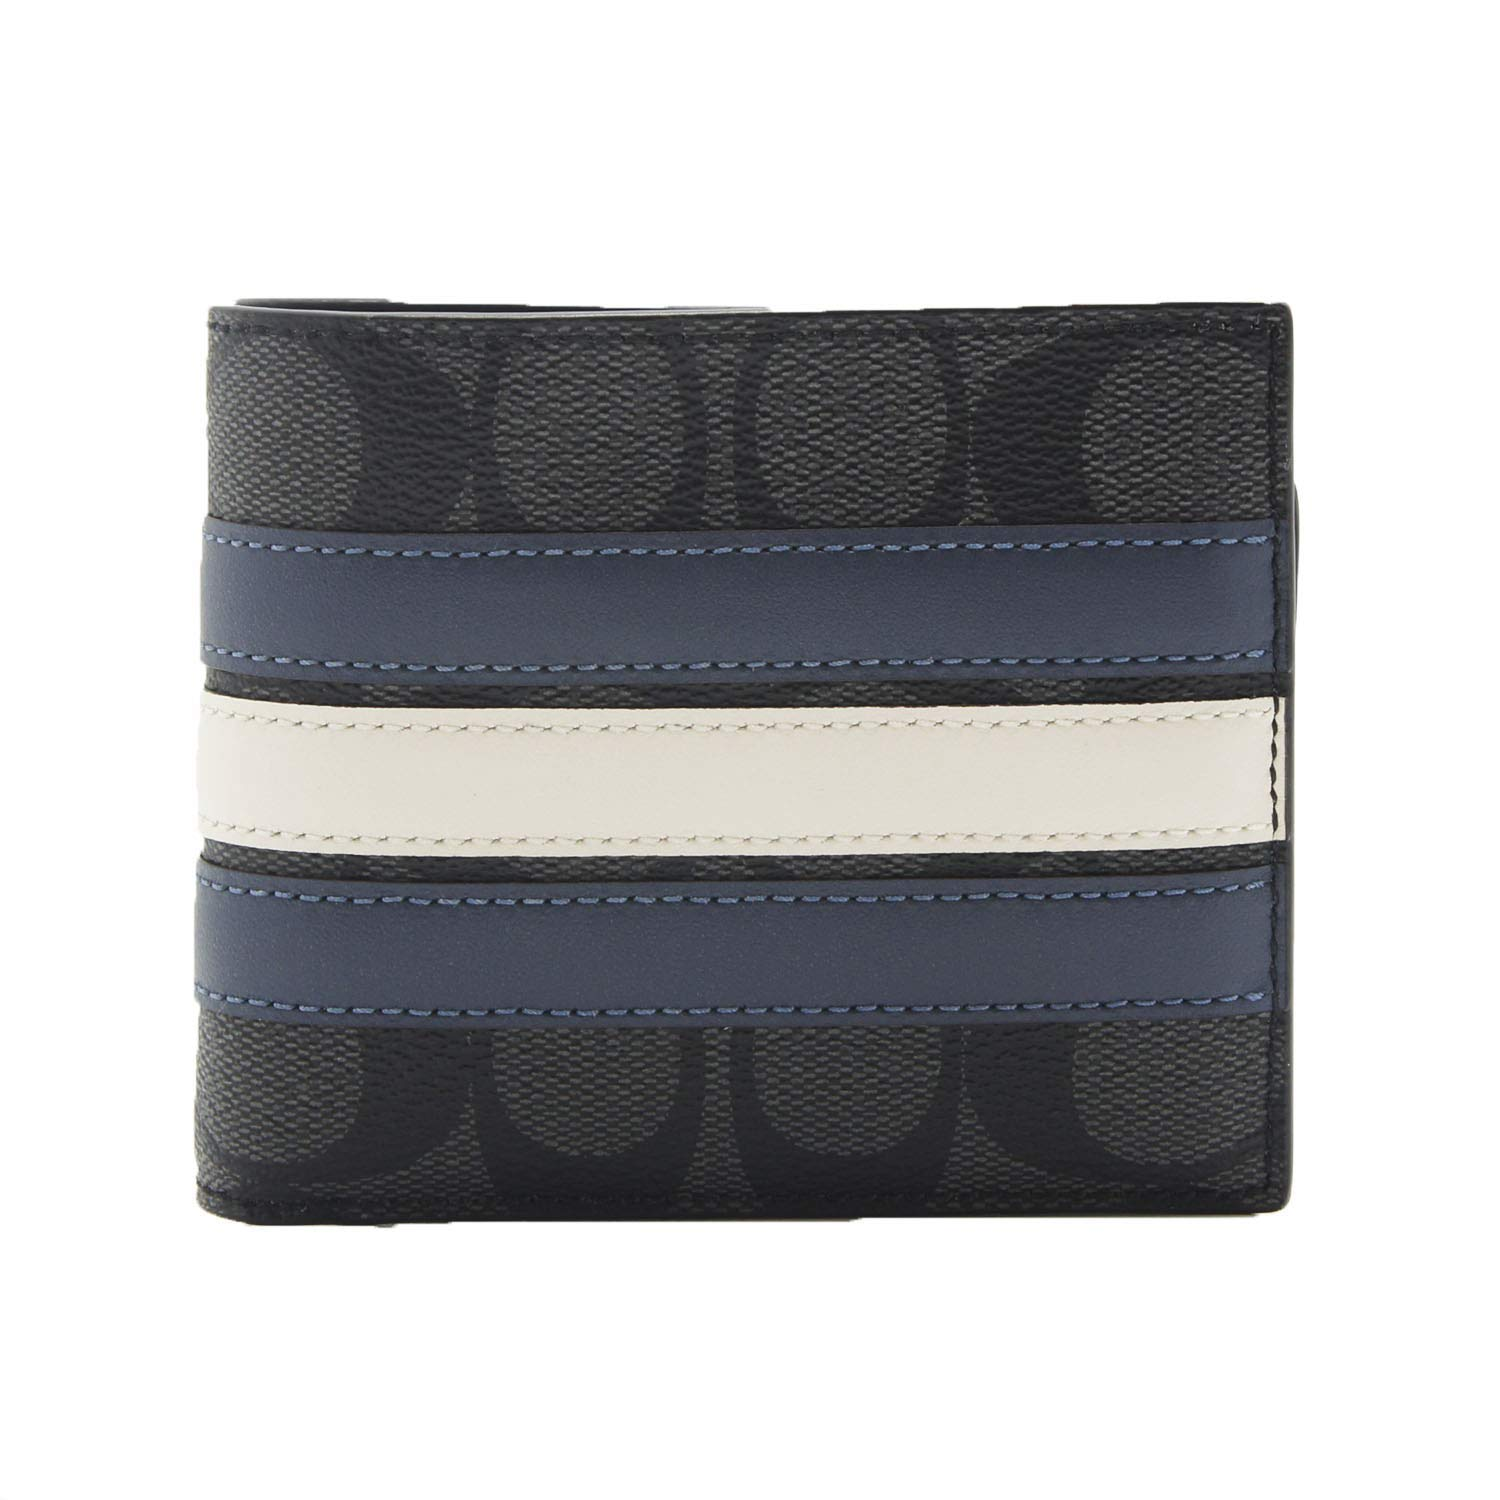 COACH F26072 3-IN-1 WALLET IN SIGNATURE CANVAS WITH VARSITY STRIPE (black) (Grey/Black) by Coach